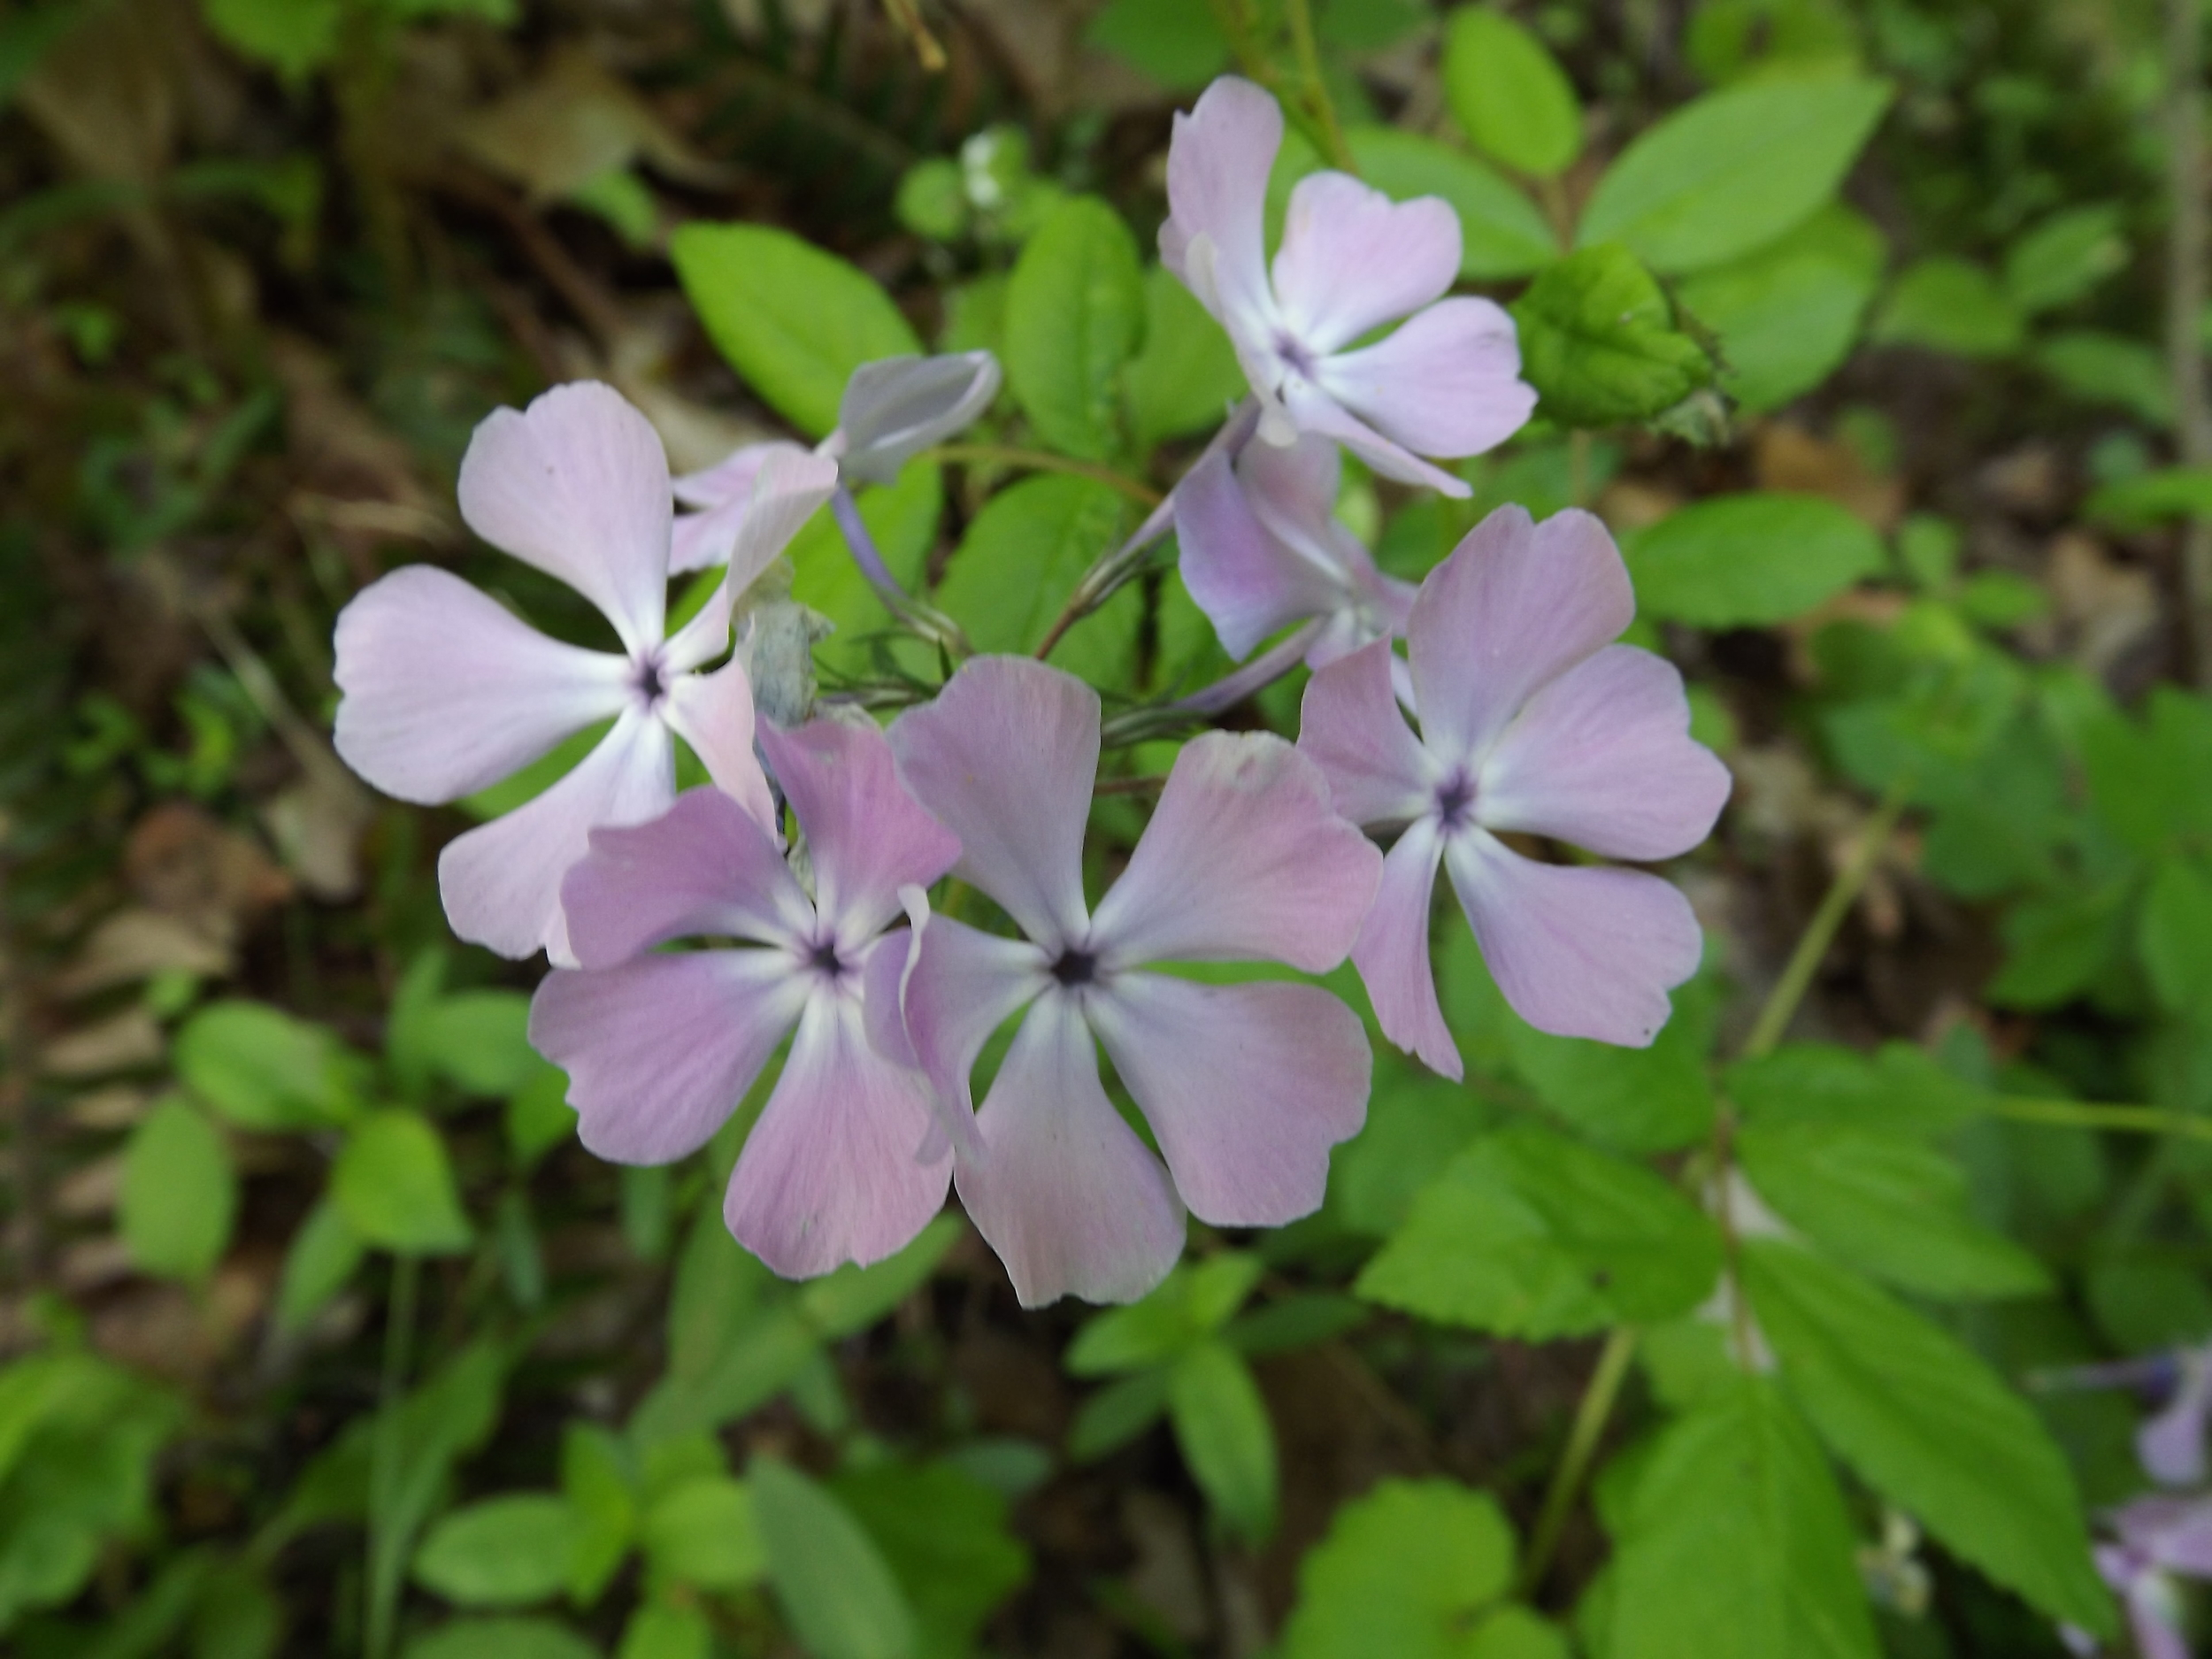 Wild Blue Phlox ( Phlox divaricata ) - Wild Blue Phlox, also known as Woodland Phlox, typically appears in the late spring and its large purplish-blue flowers easily recognizable. Many cultivated species are used in home landscaping, but the flowers are smaller and come in a greater variety of colors.